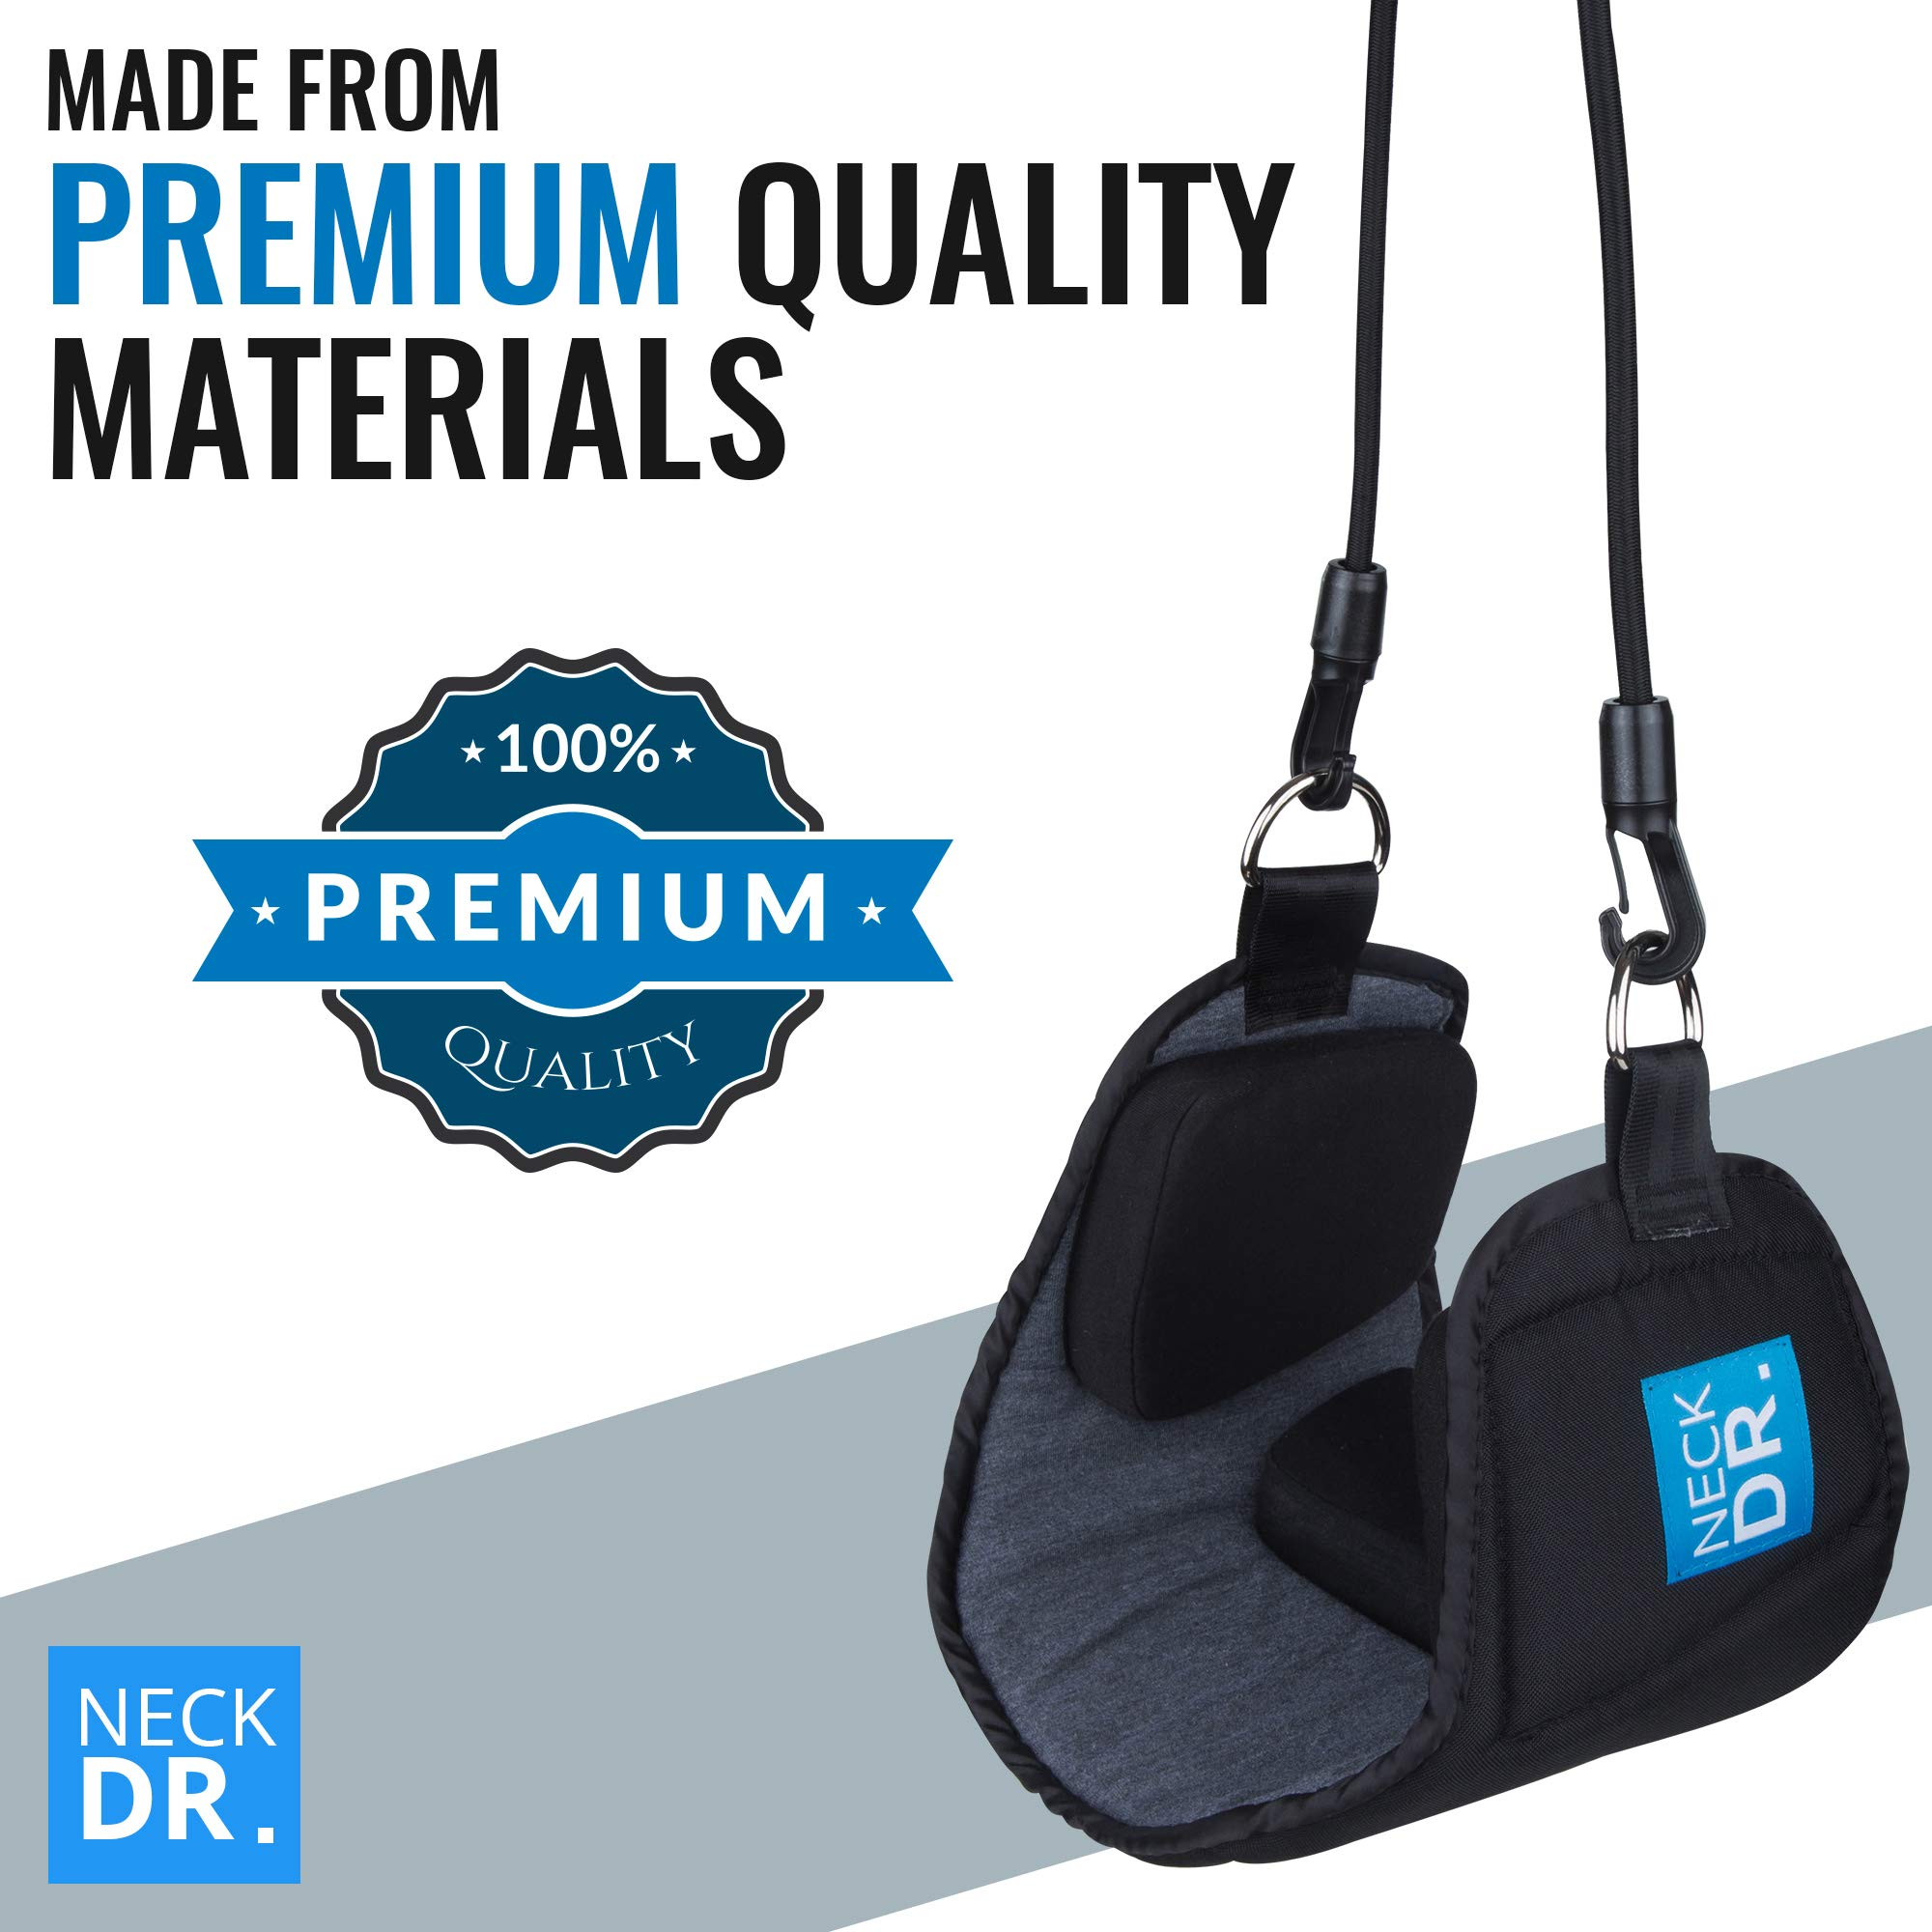 NECK DR. Premium Neck Hammock/Portable Traction Device – Neck Comfort, Cervical Compression Relief, Relaxation Device – Bonus Items: Neck Dr. Brand Eye Mask and Spiky Massage Ball by Neck Dr. (Image #7)